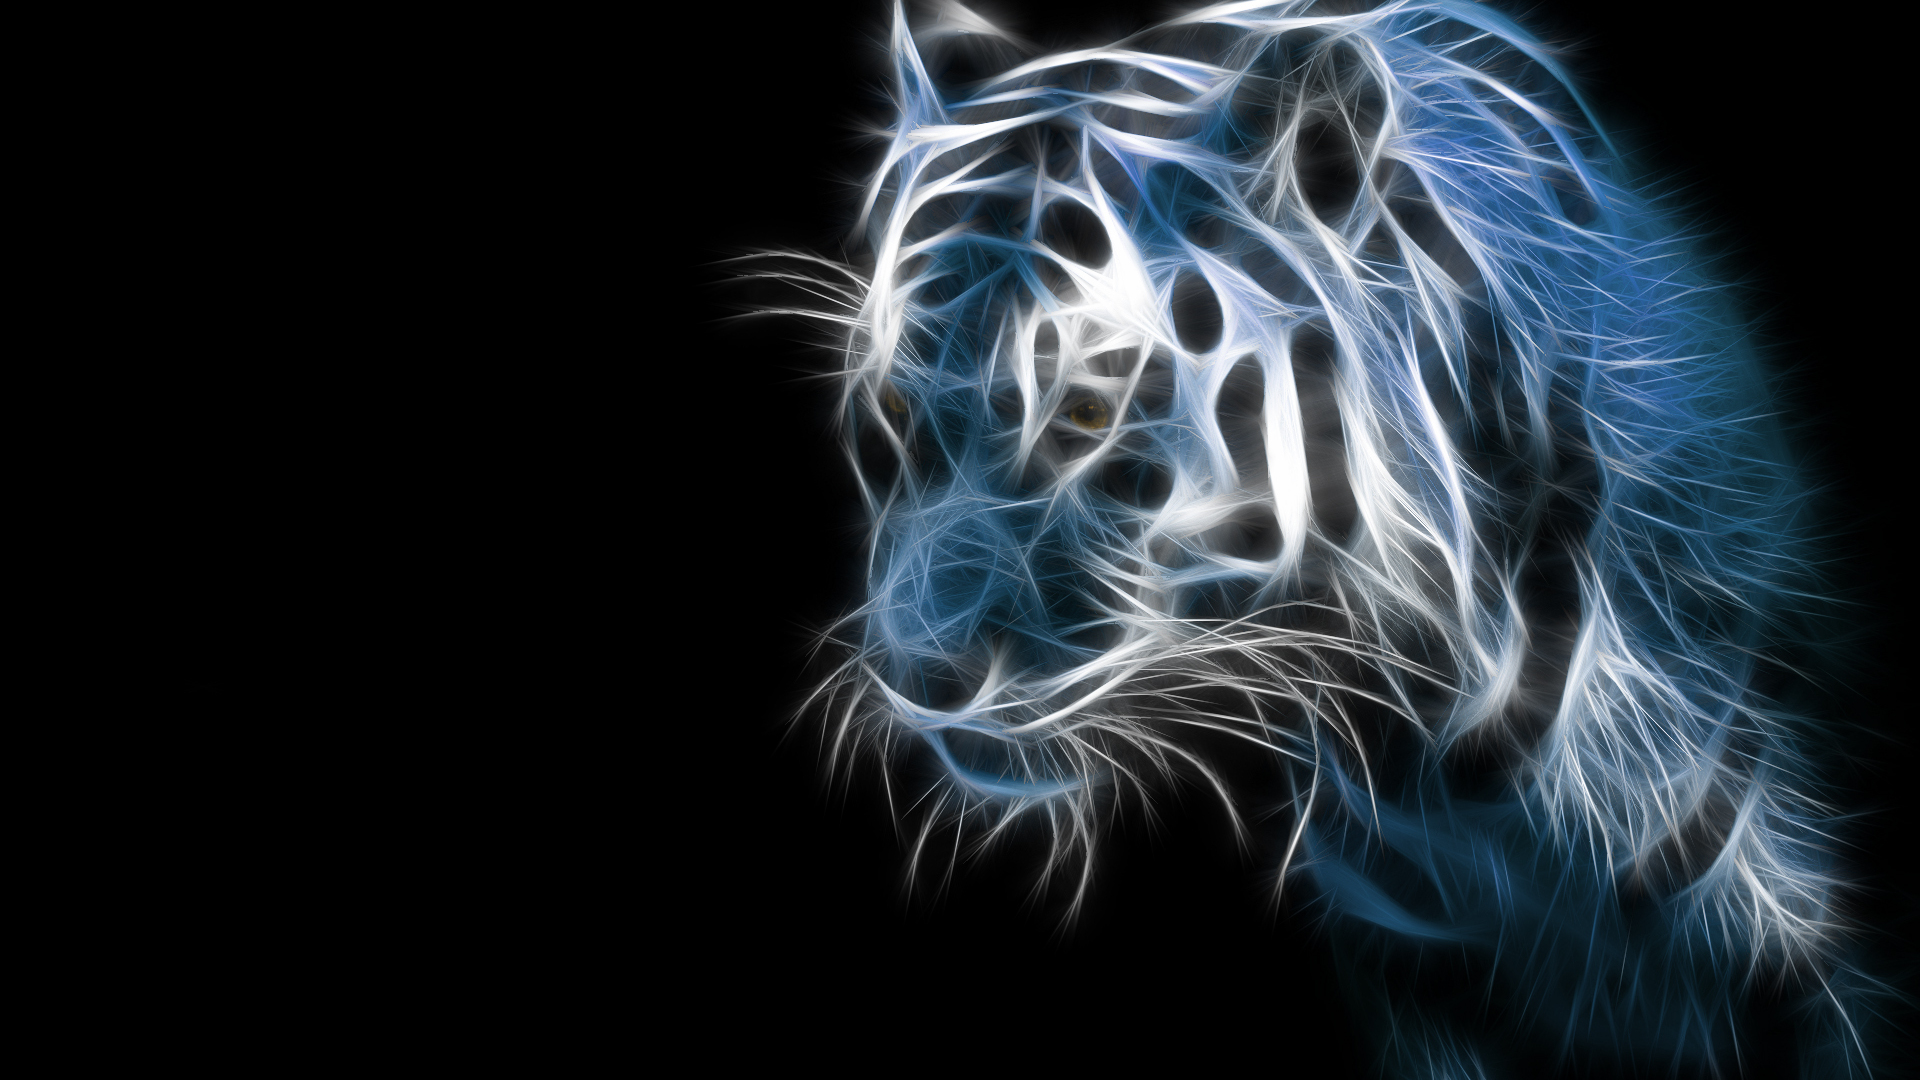 wallpaper wiki tiger animal 1920a—1080 hd photos pic wpe0014162